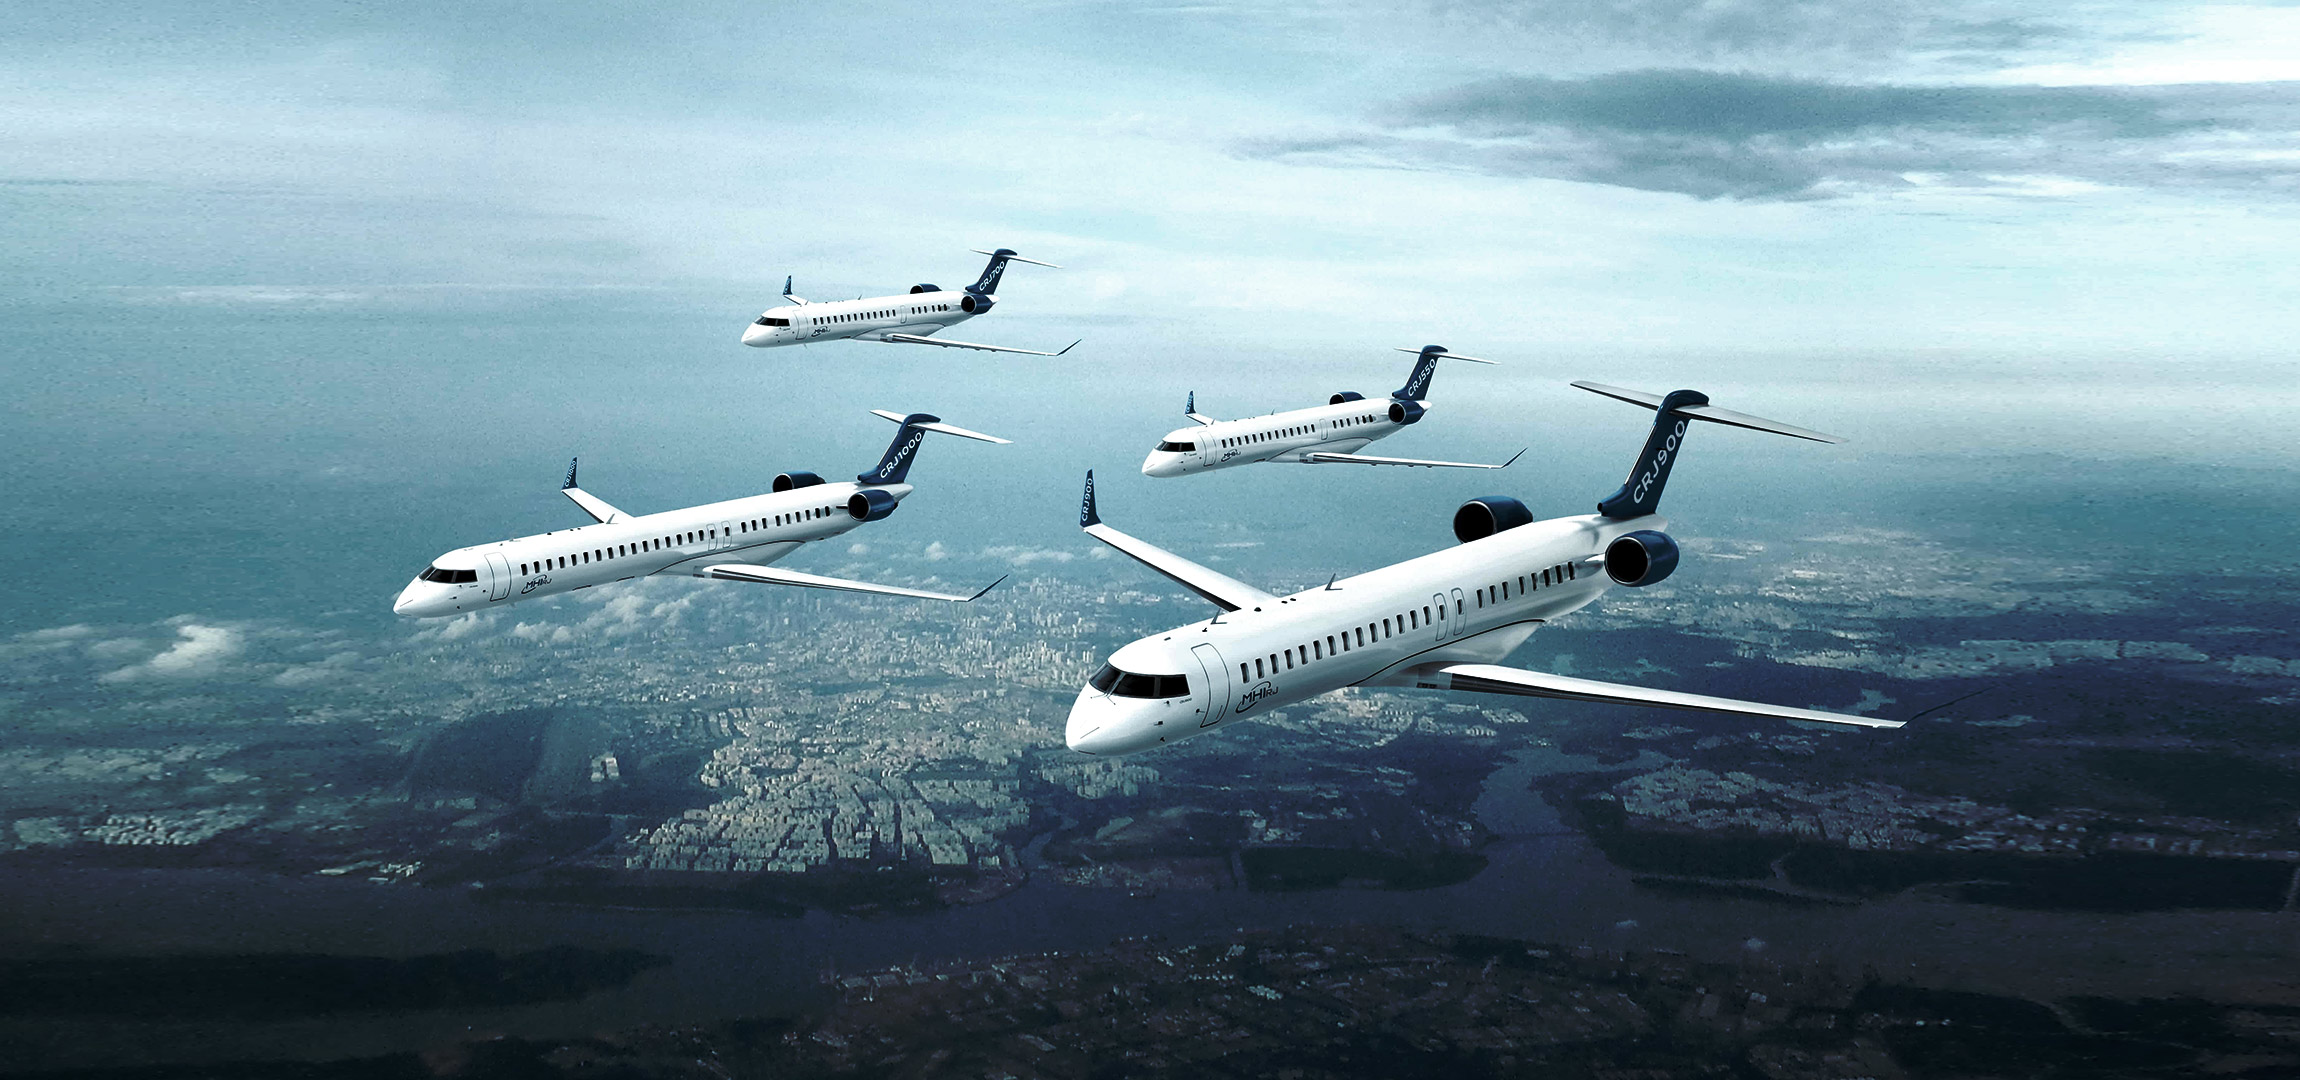 Airplane fleet flying in formation